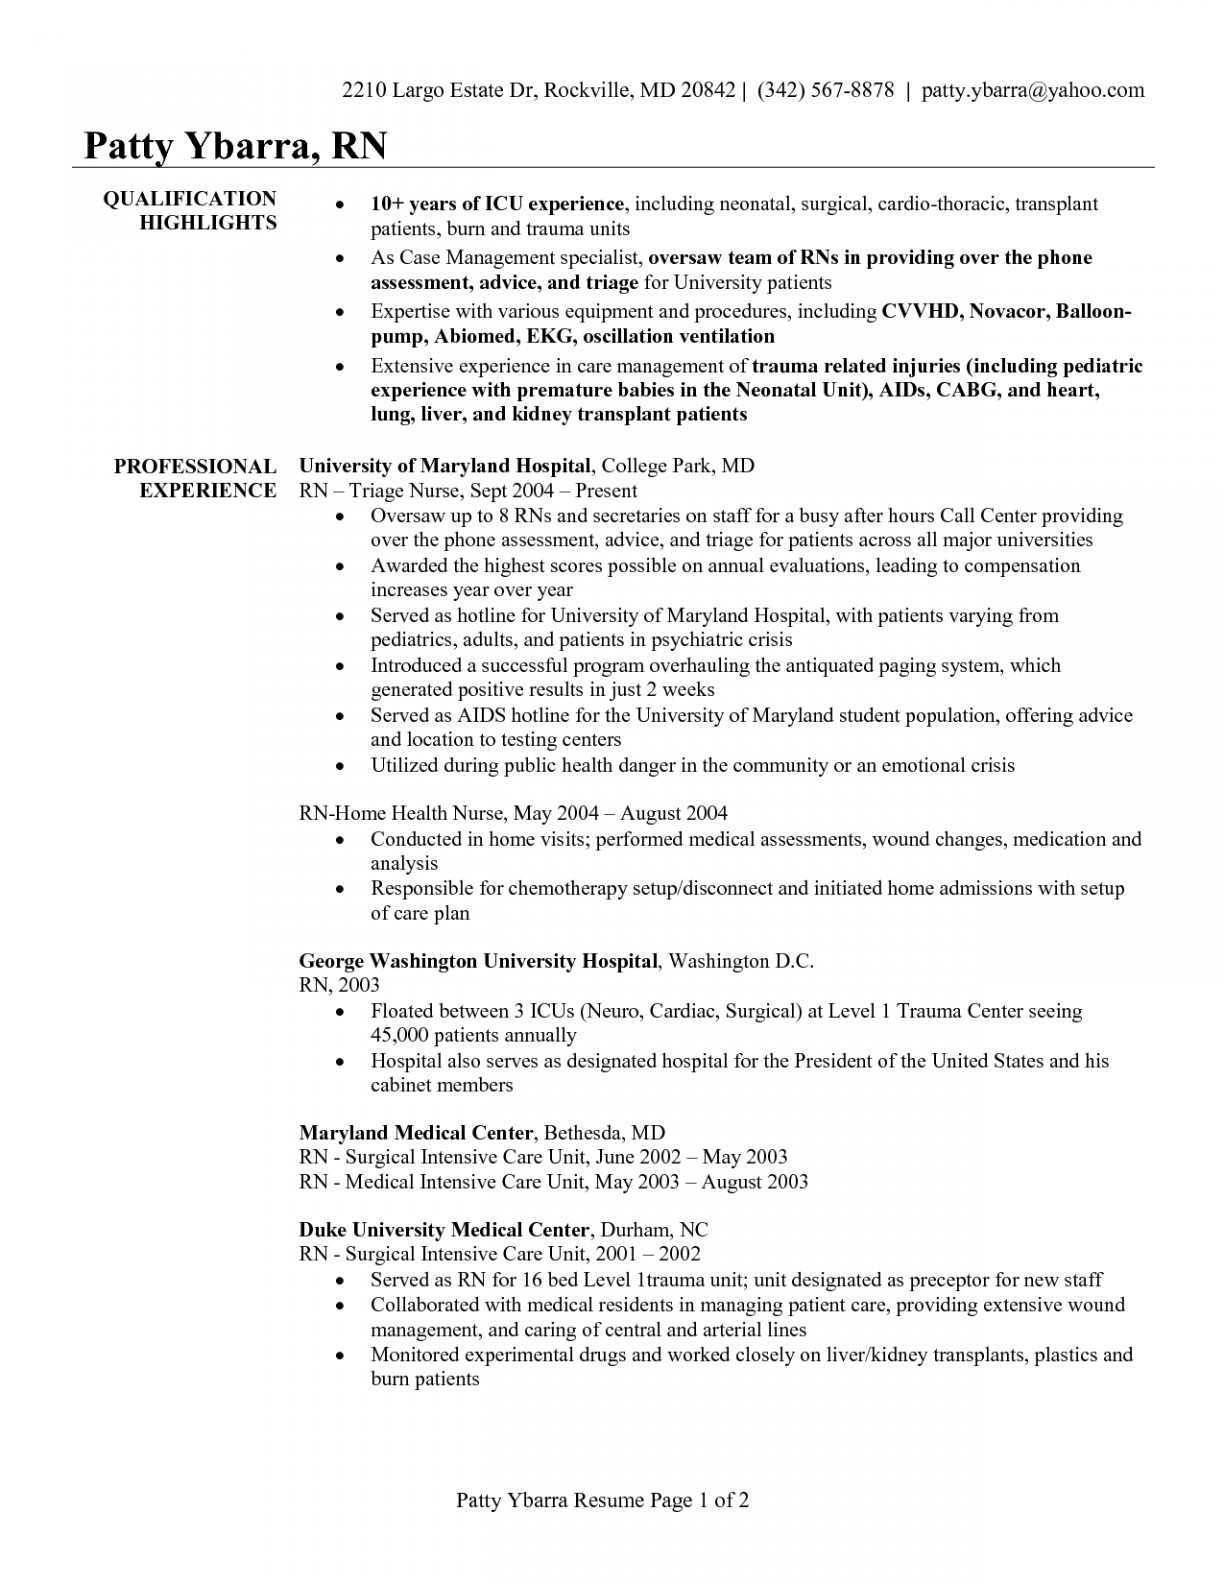 Home Health Nurse Resume - Telemetry Nurse Resume